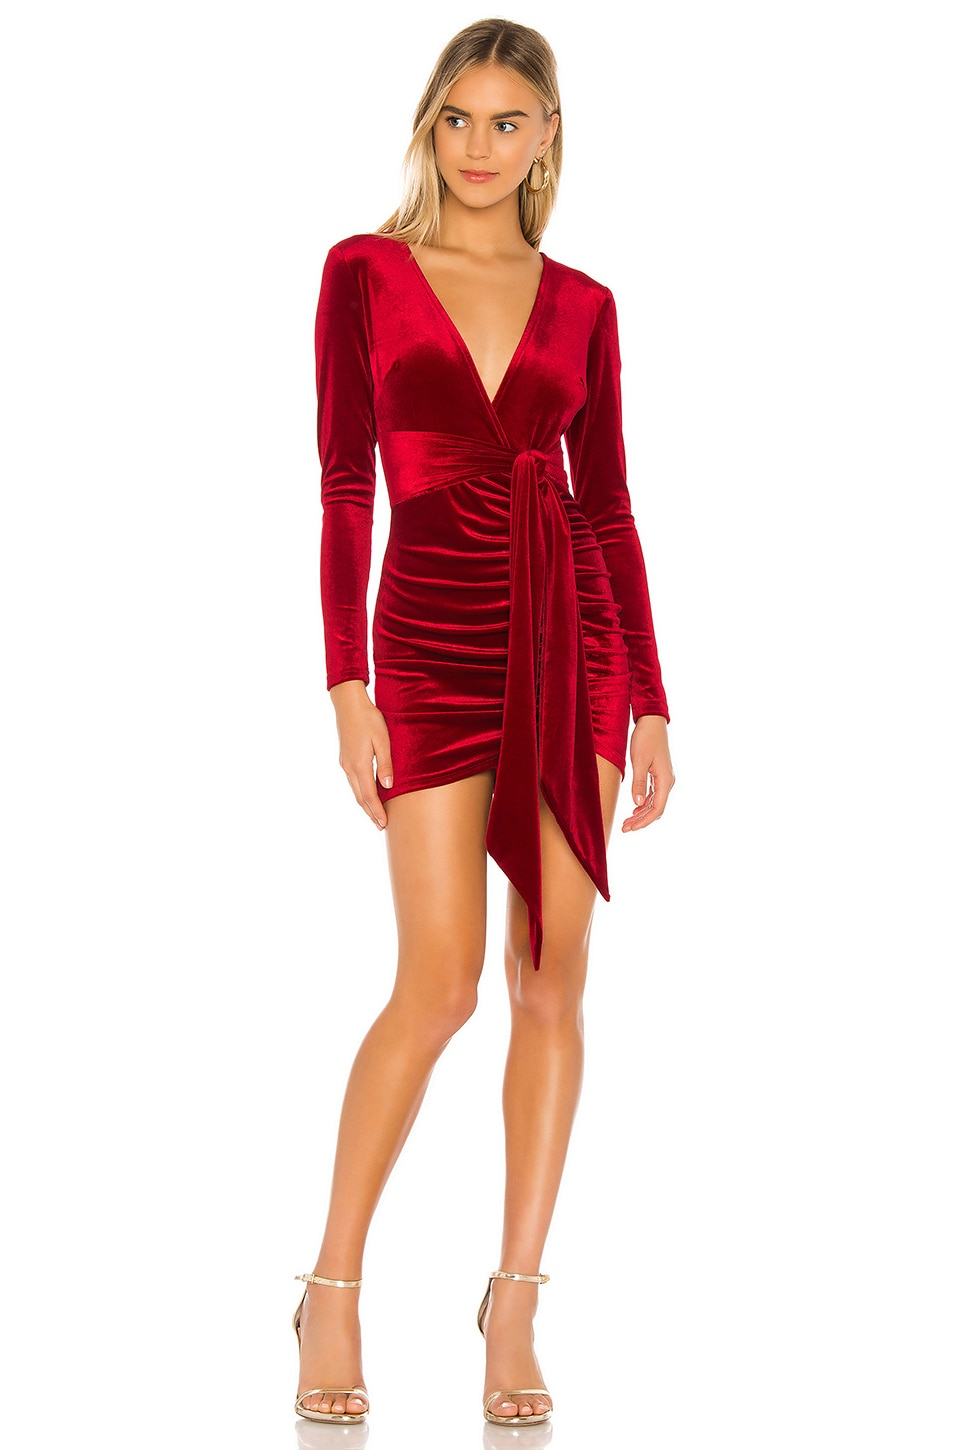 Superdown Jaylin Ruched Mini Dress In Red Revolve Цена 2 054 ₽ руб. revolve